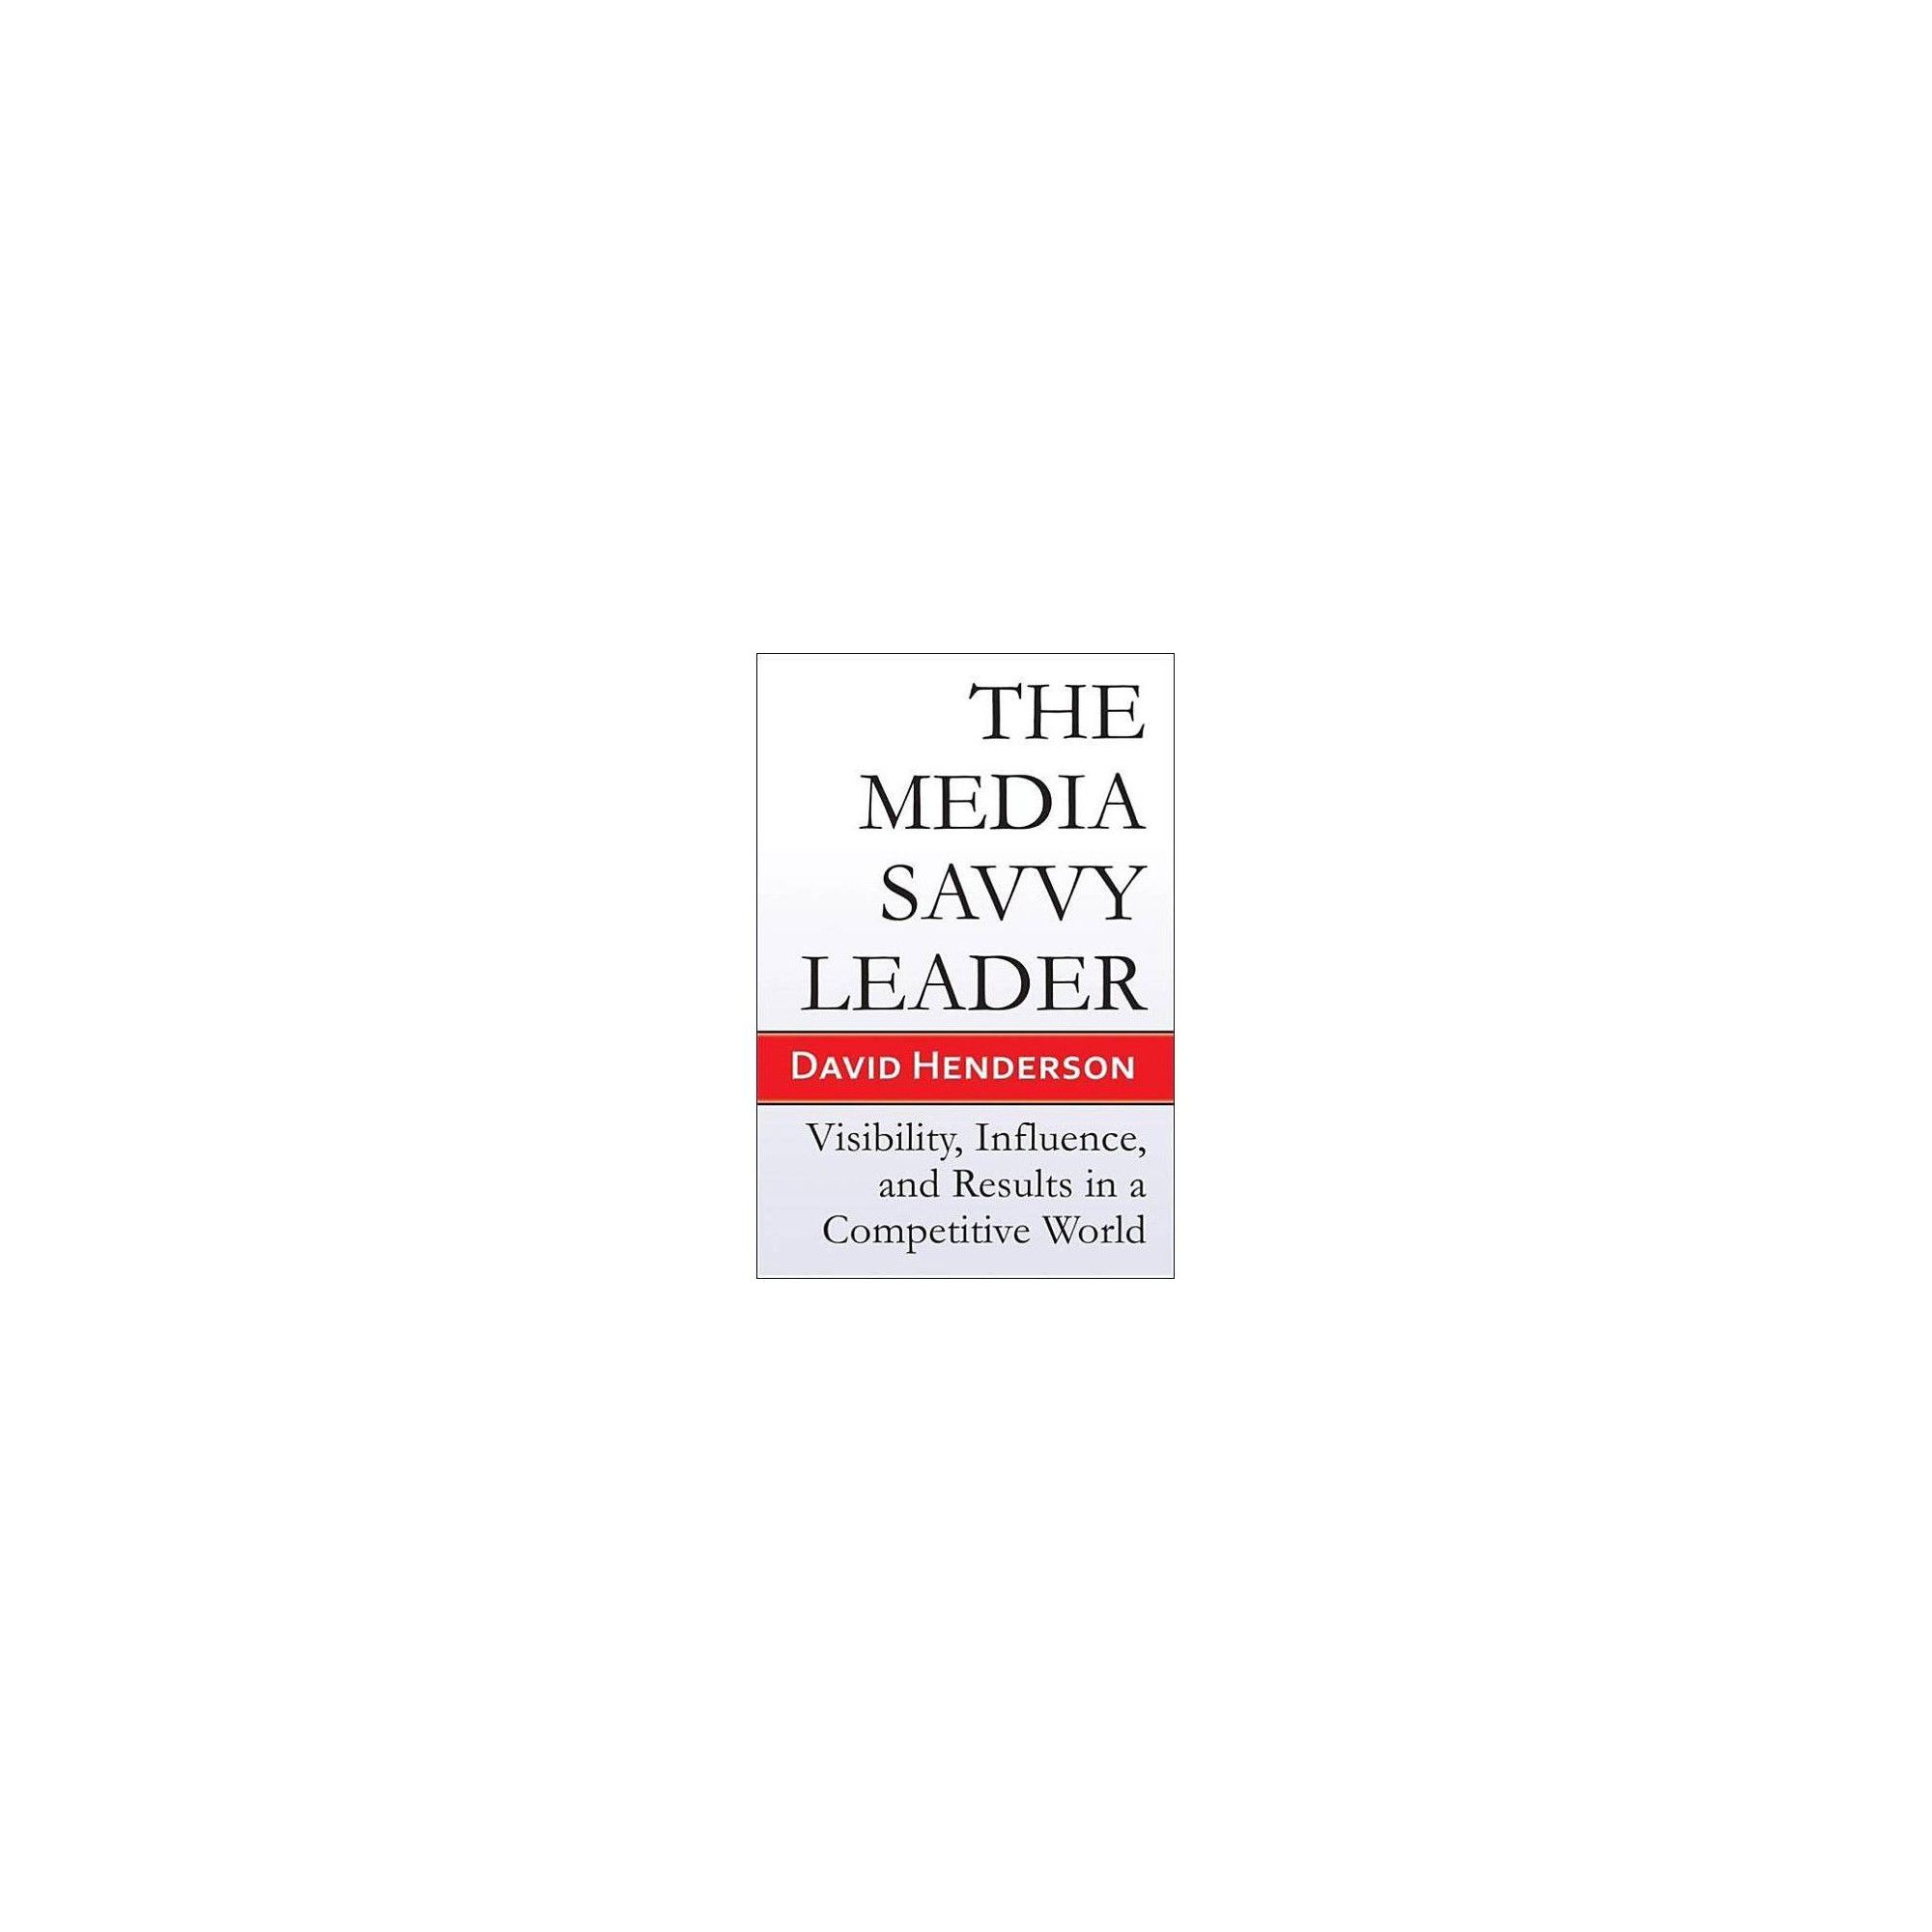 The Media Savvy Leader - by David Henderson (Paperback) #cubanleader